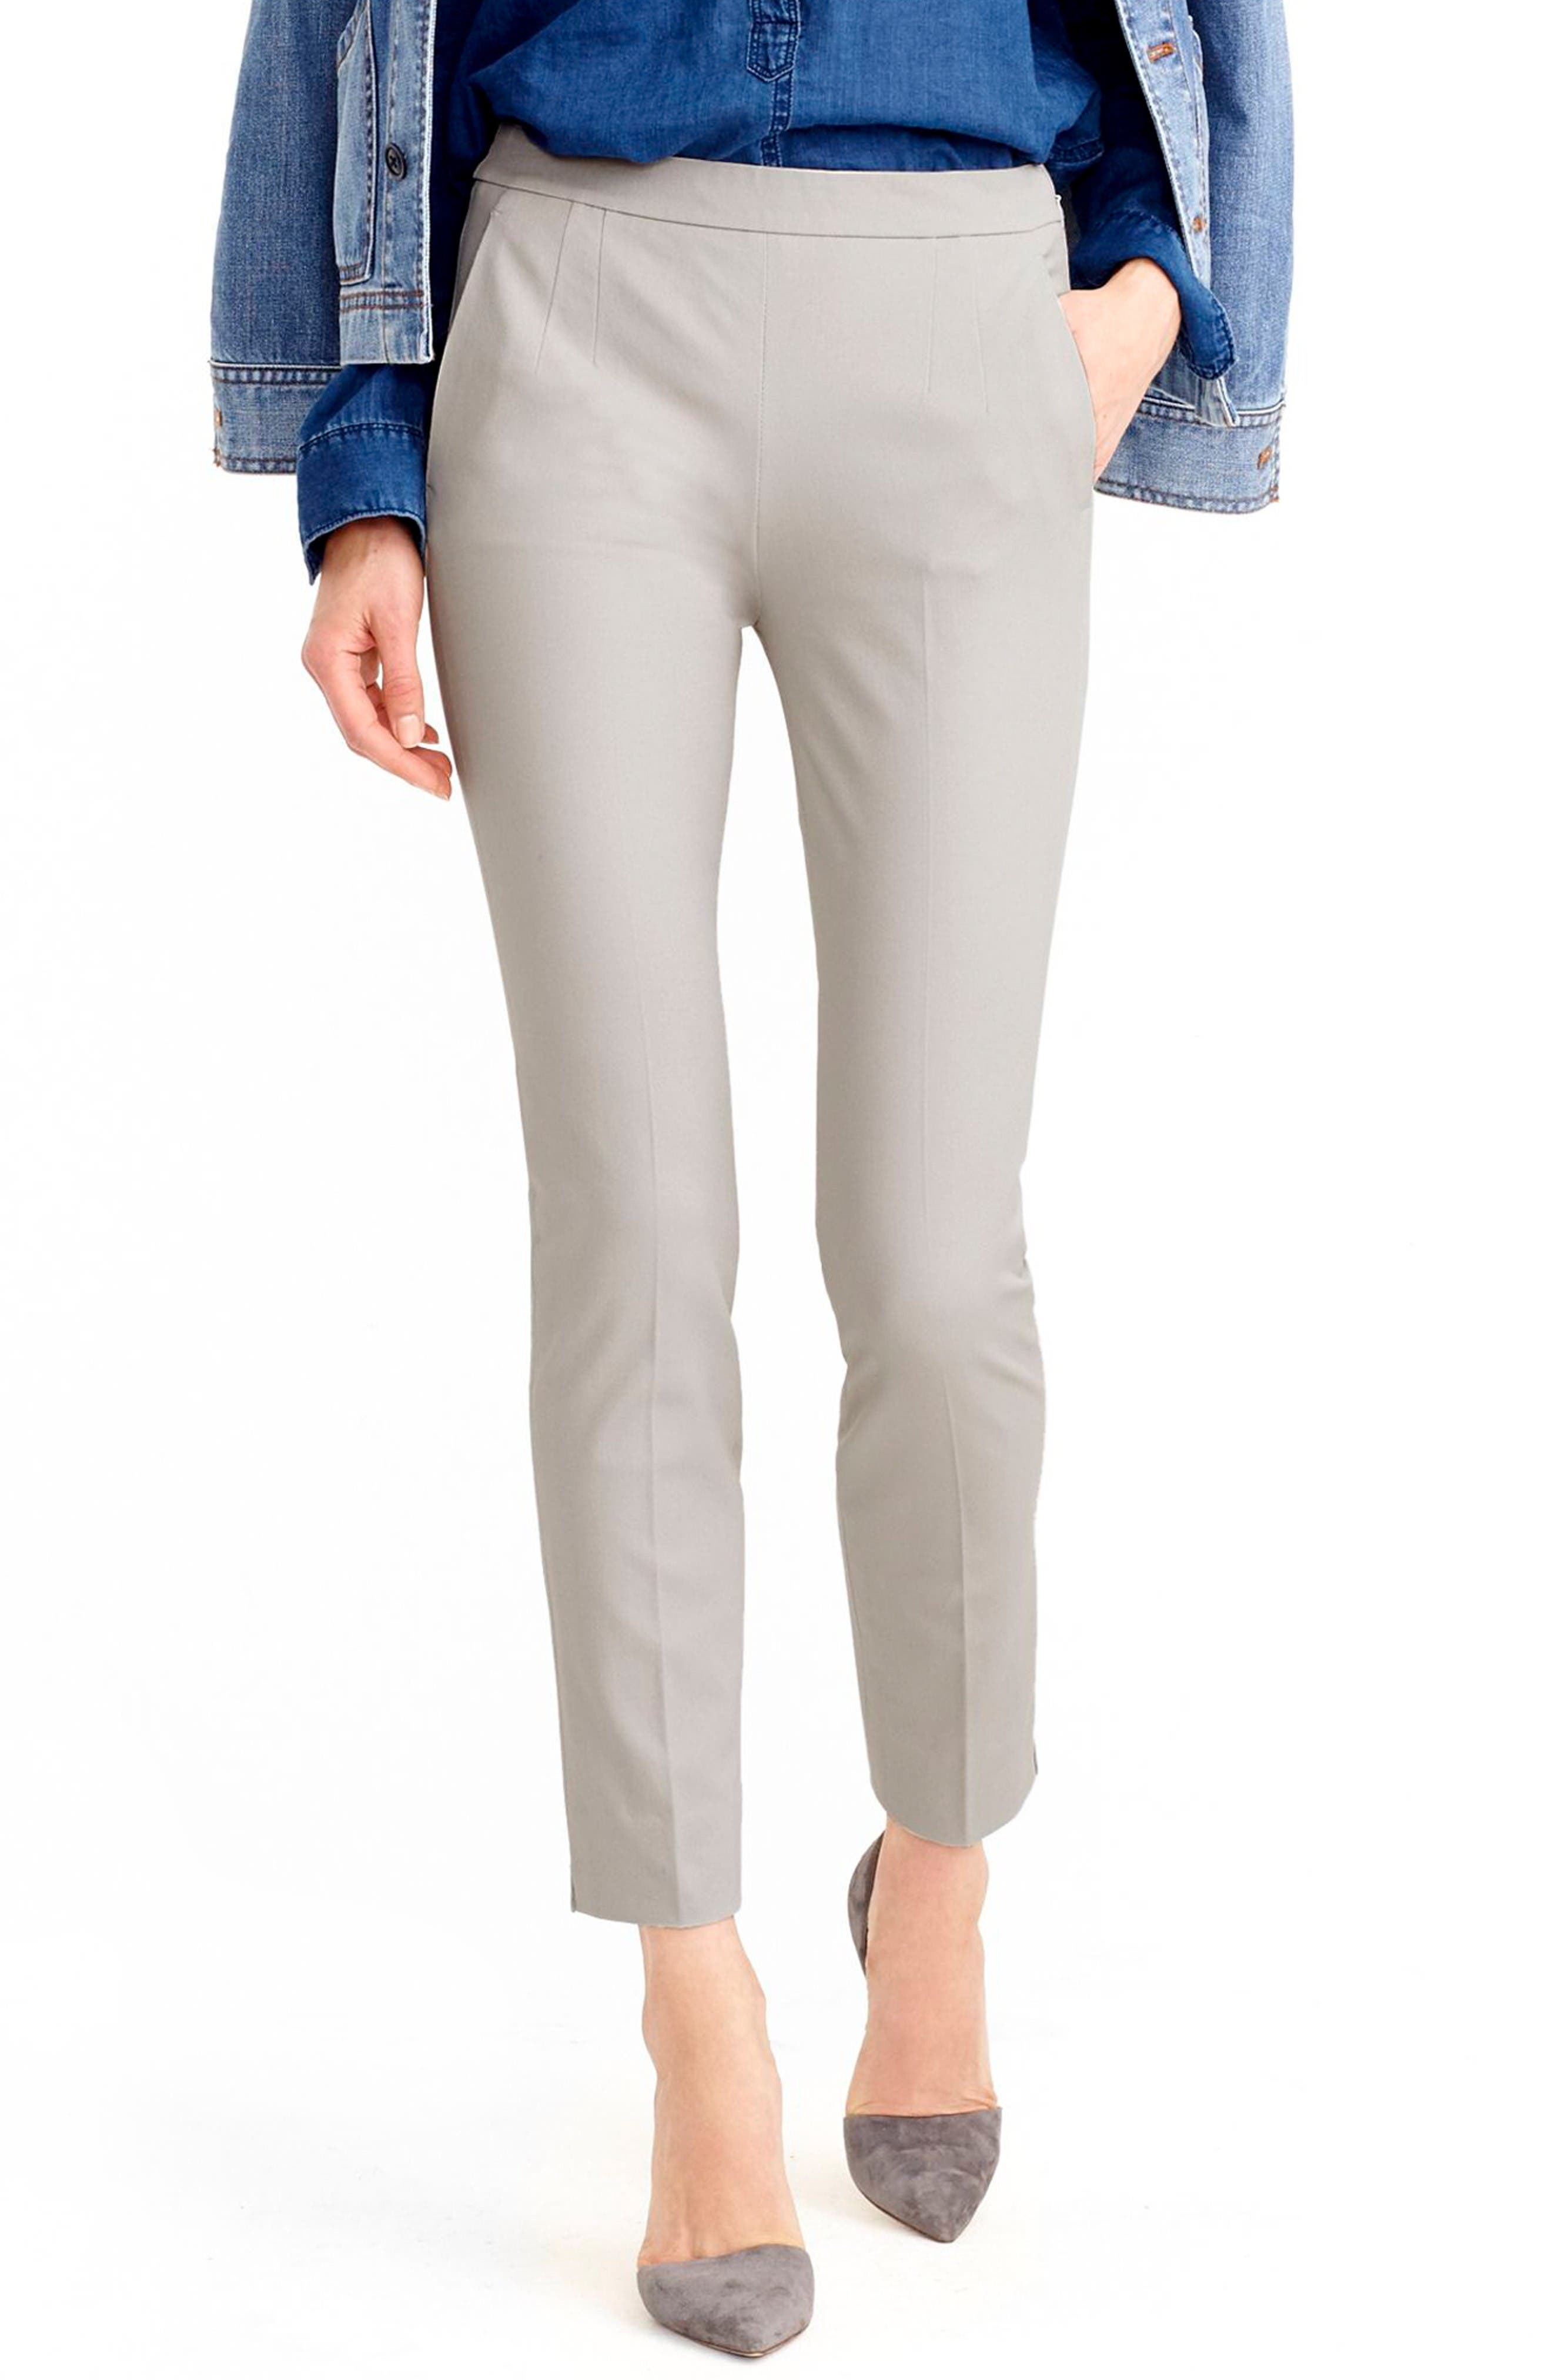 J.Crew 'Martie' Bi-Stretch Cotton Blend Pants (Regular & Petite)